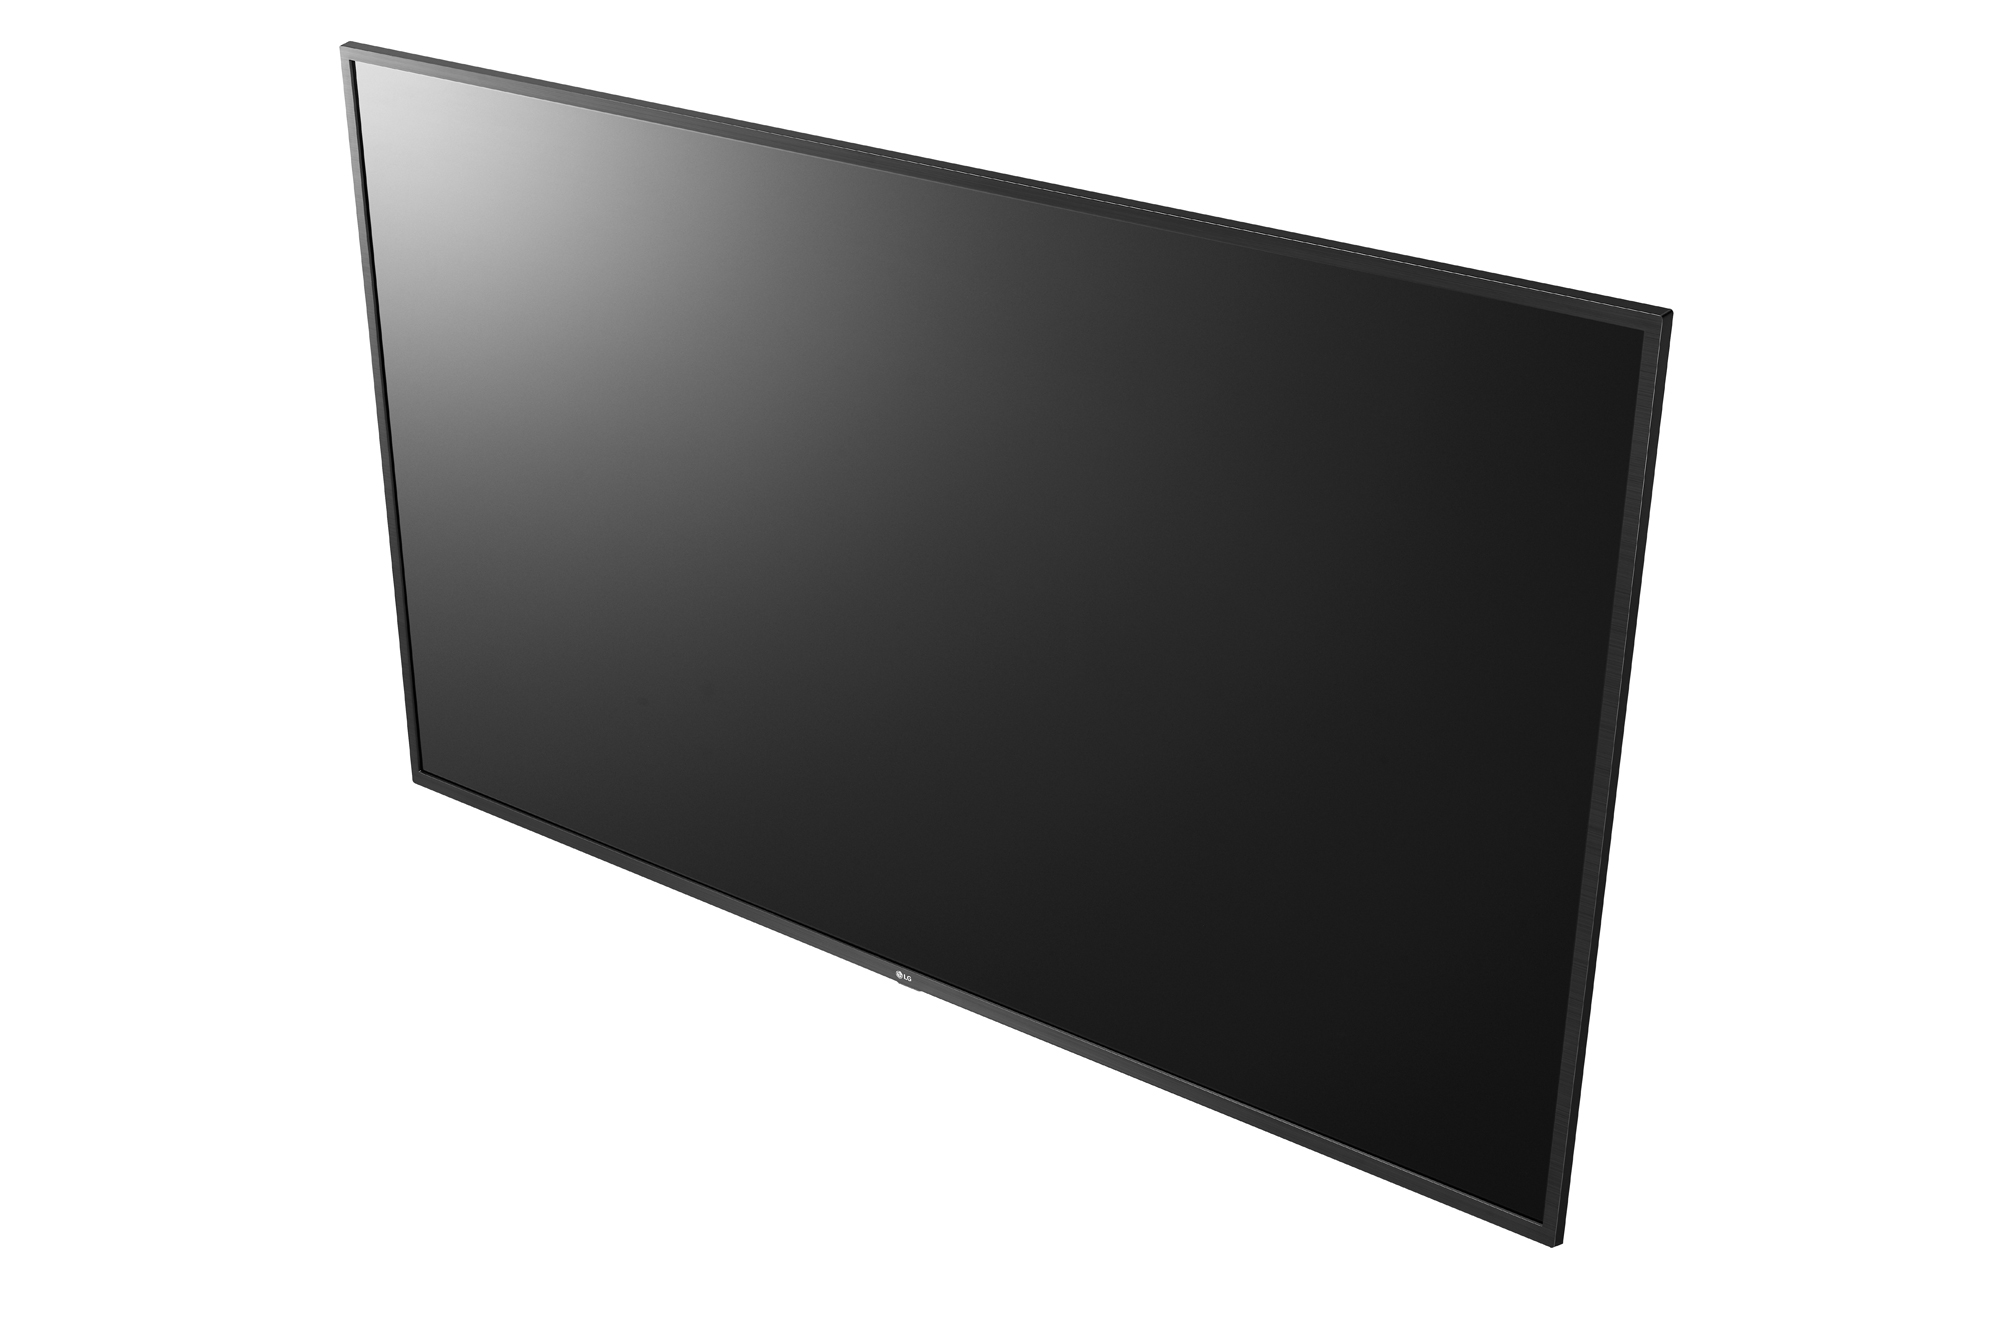 LG Smart TV Signage 55UT640S (EU) 9